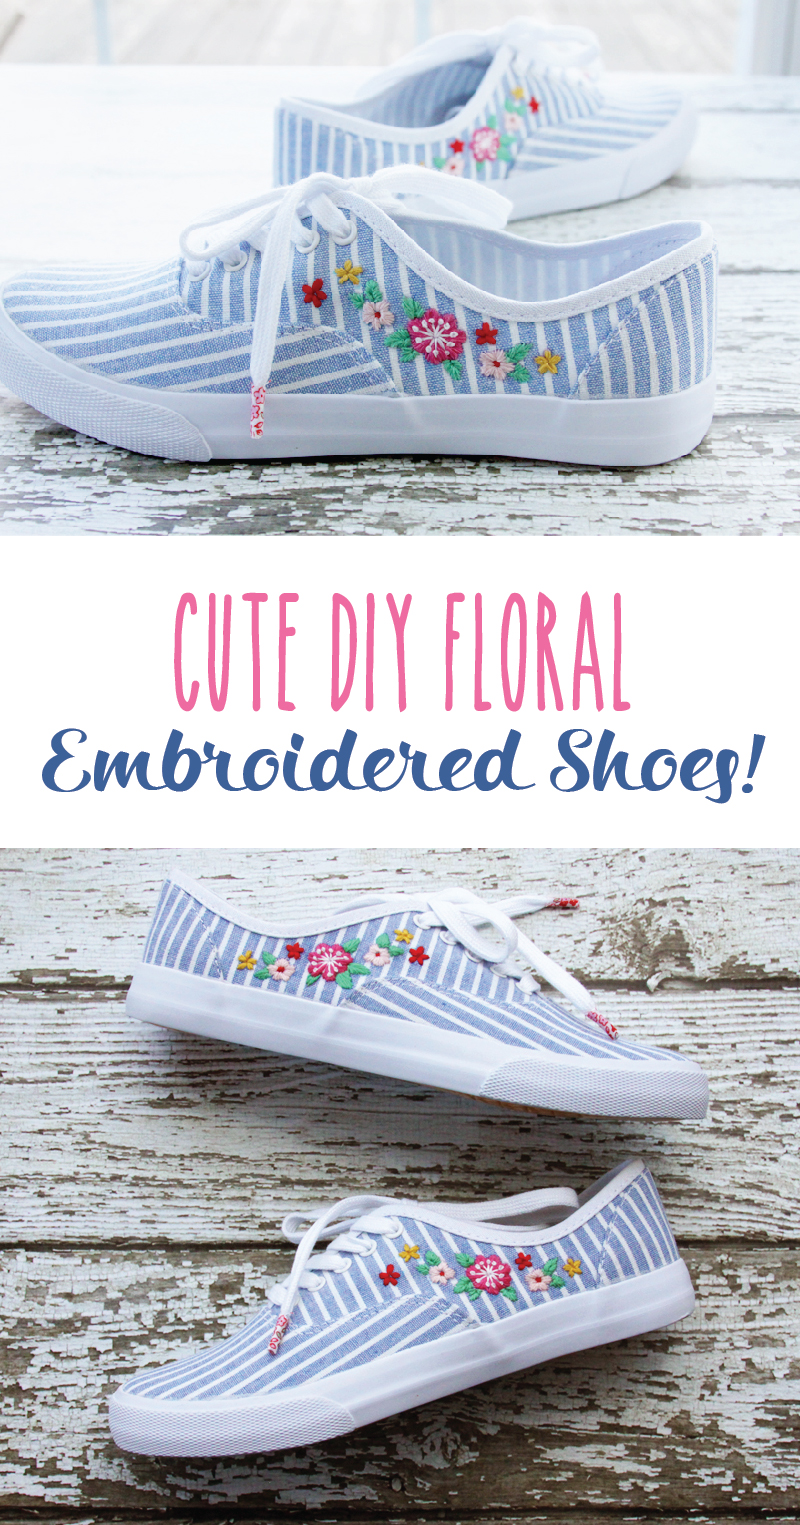 Cute-DIY-Floral-Embroidered-Shoes-01